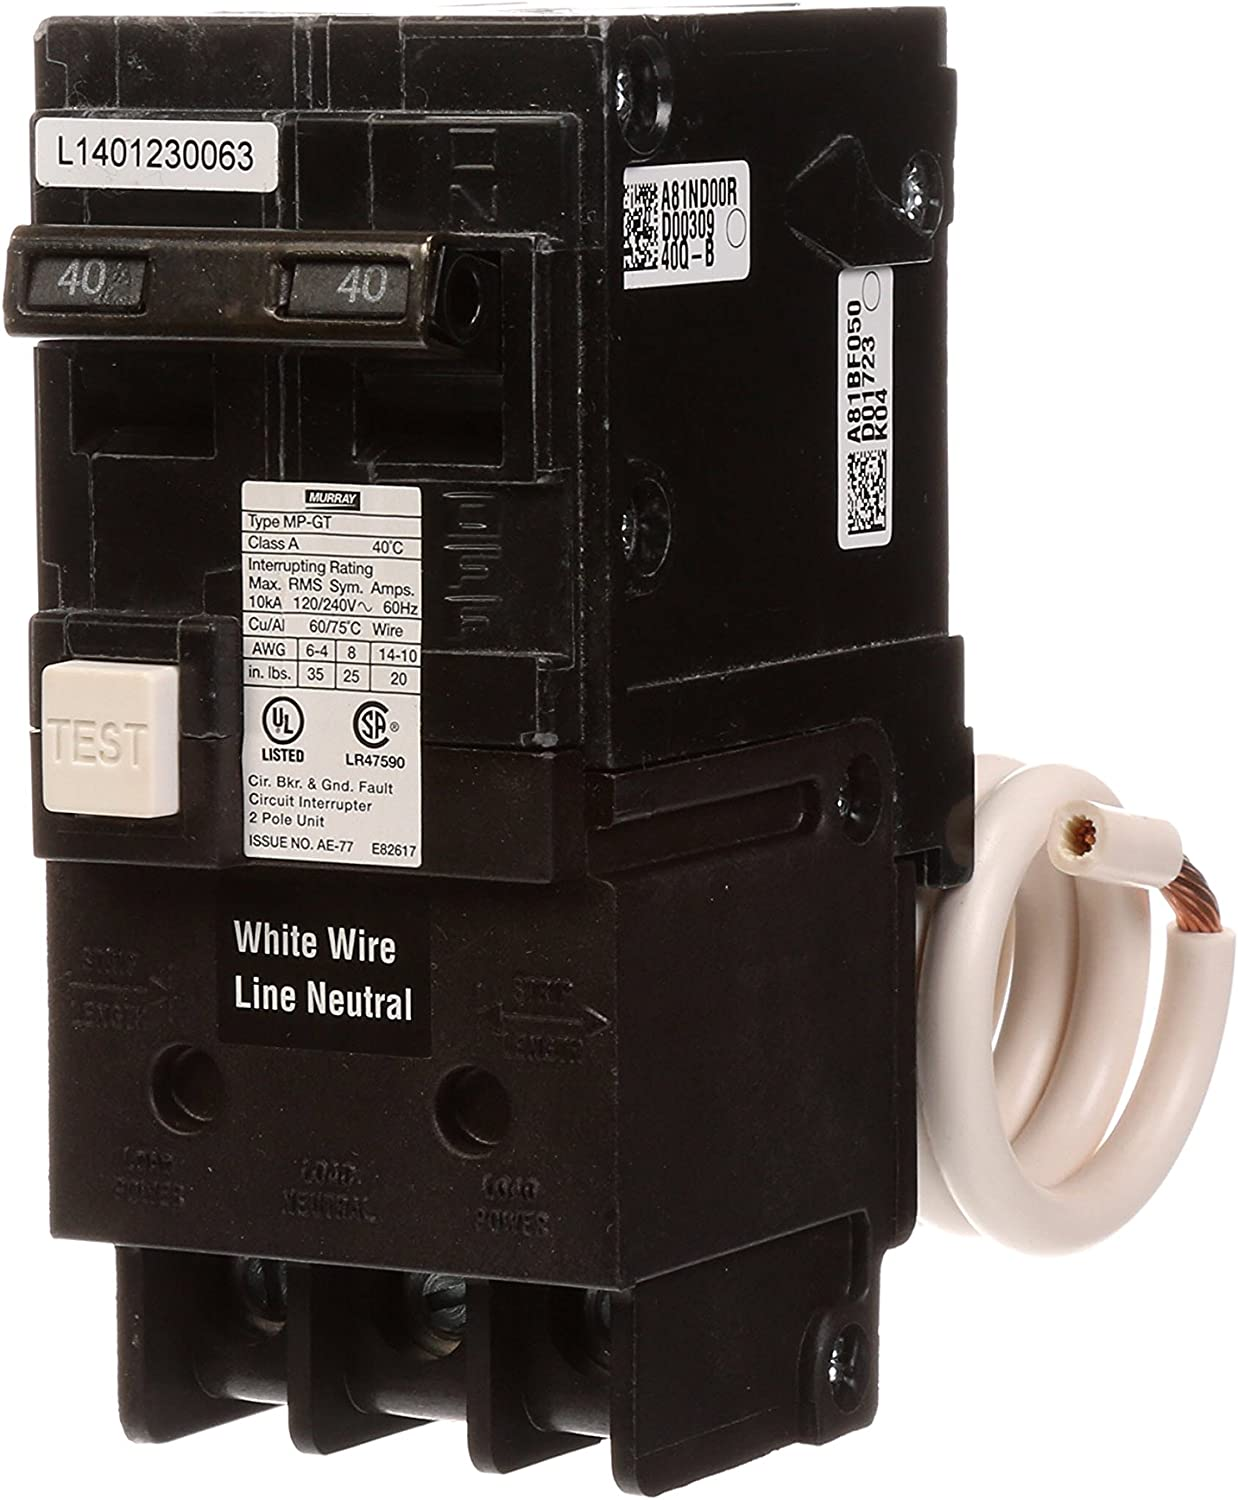 Murray MP240GFA 40 Amp 2-Pole GFCI Circuit Breaker with Self Test & Lockout Feature